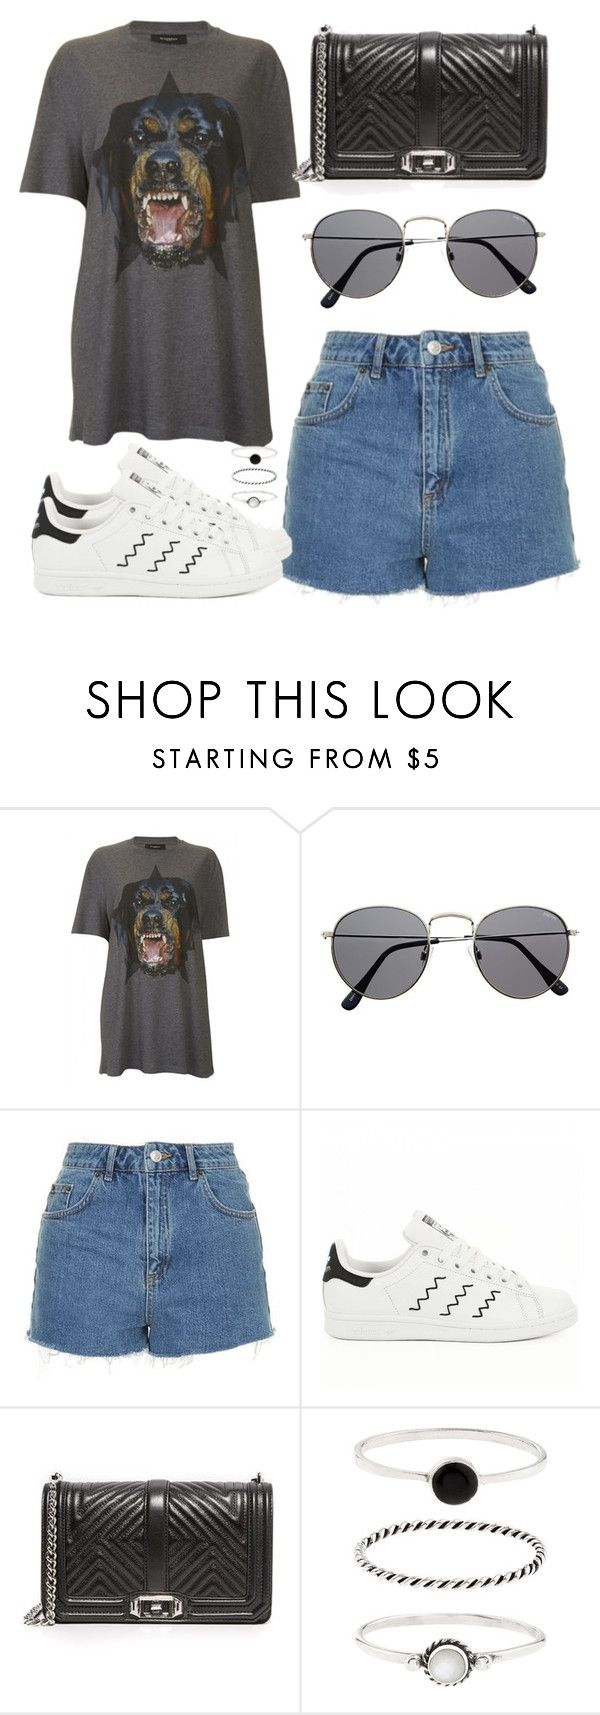 """""""Sem título #2882"""" by beatrizvilar on Polyvore featuring moda, Givenchy, Topshop, adidas, Rebecca Minkoff e Accessorize"""